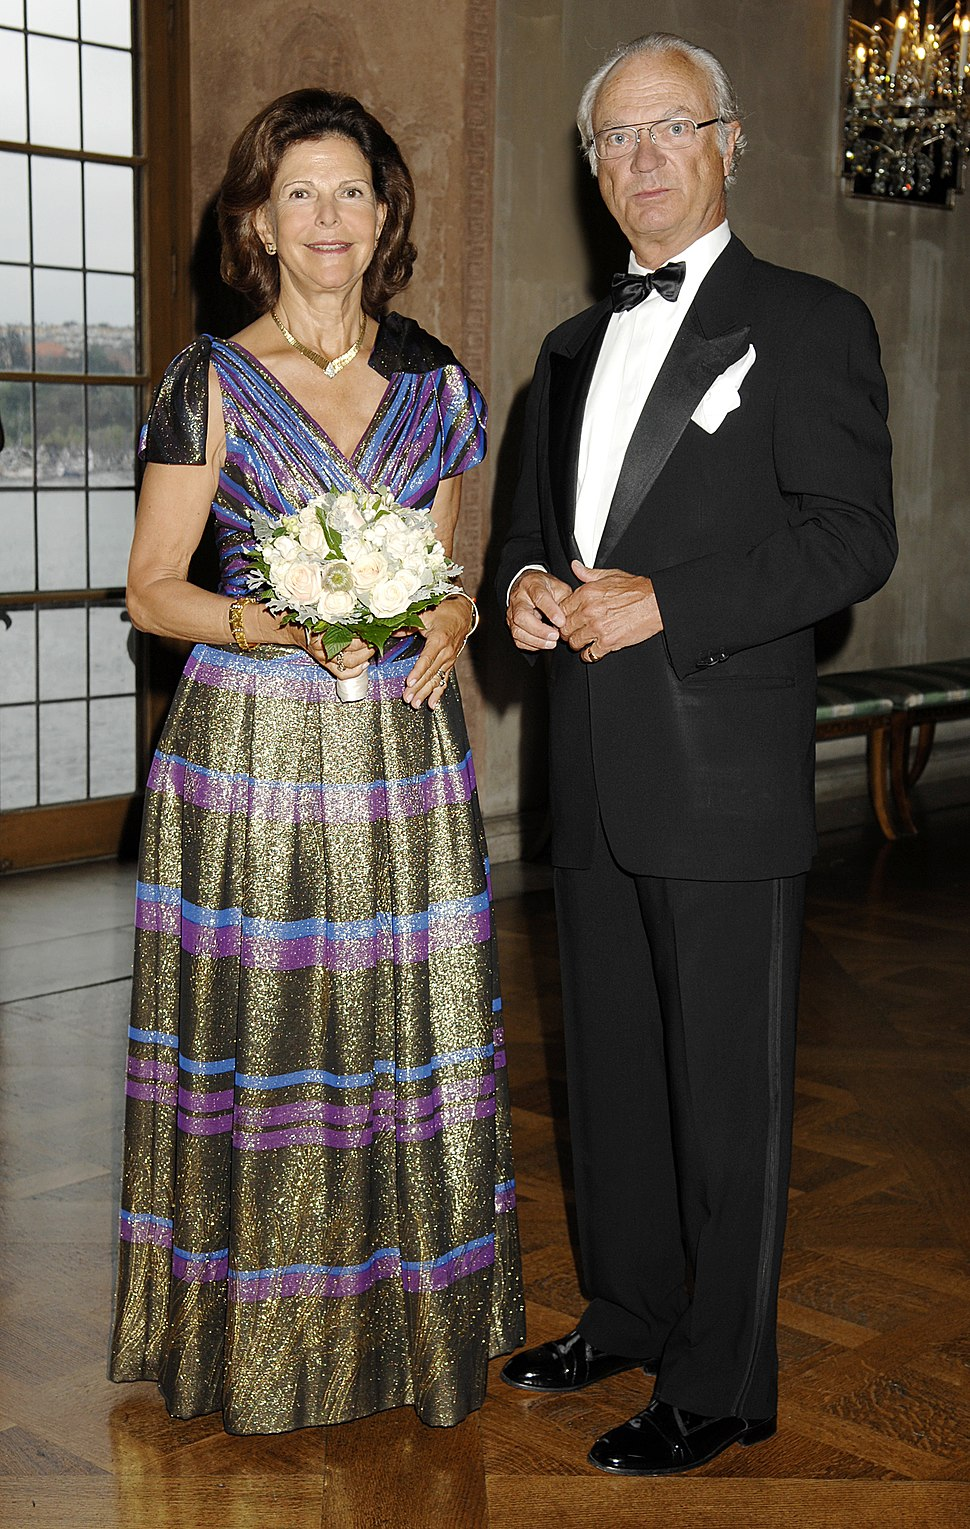 Queen and King of Sweden